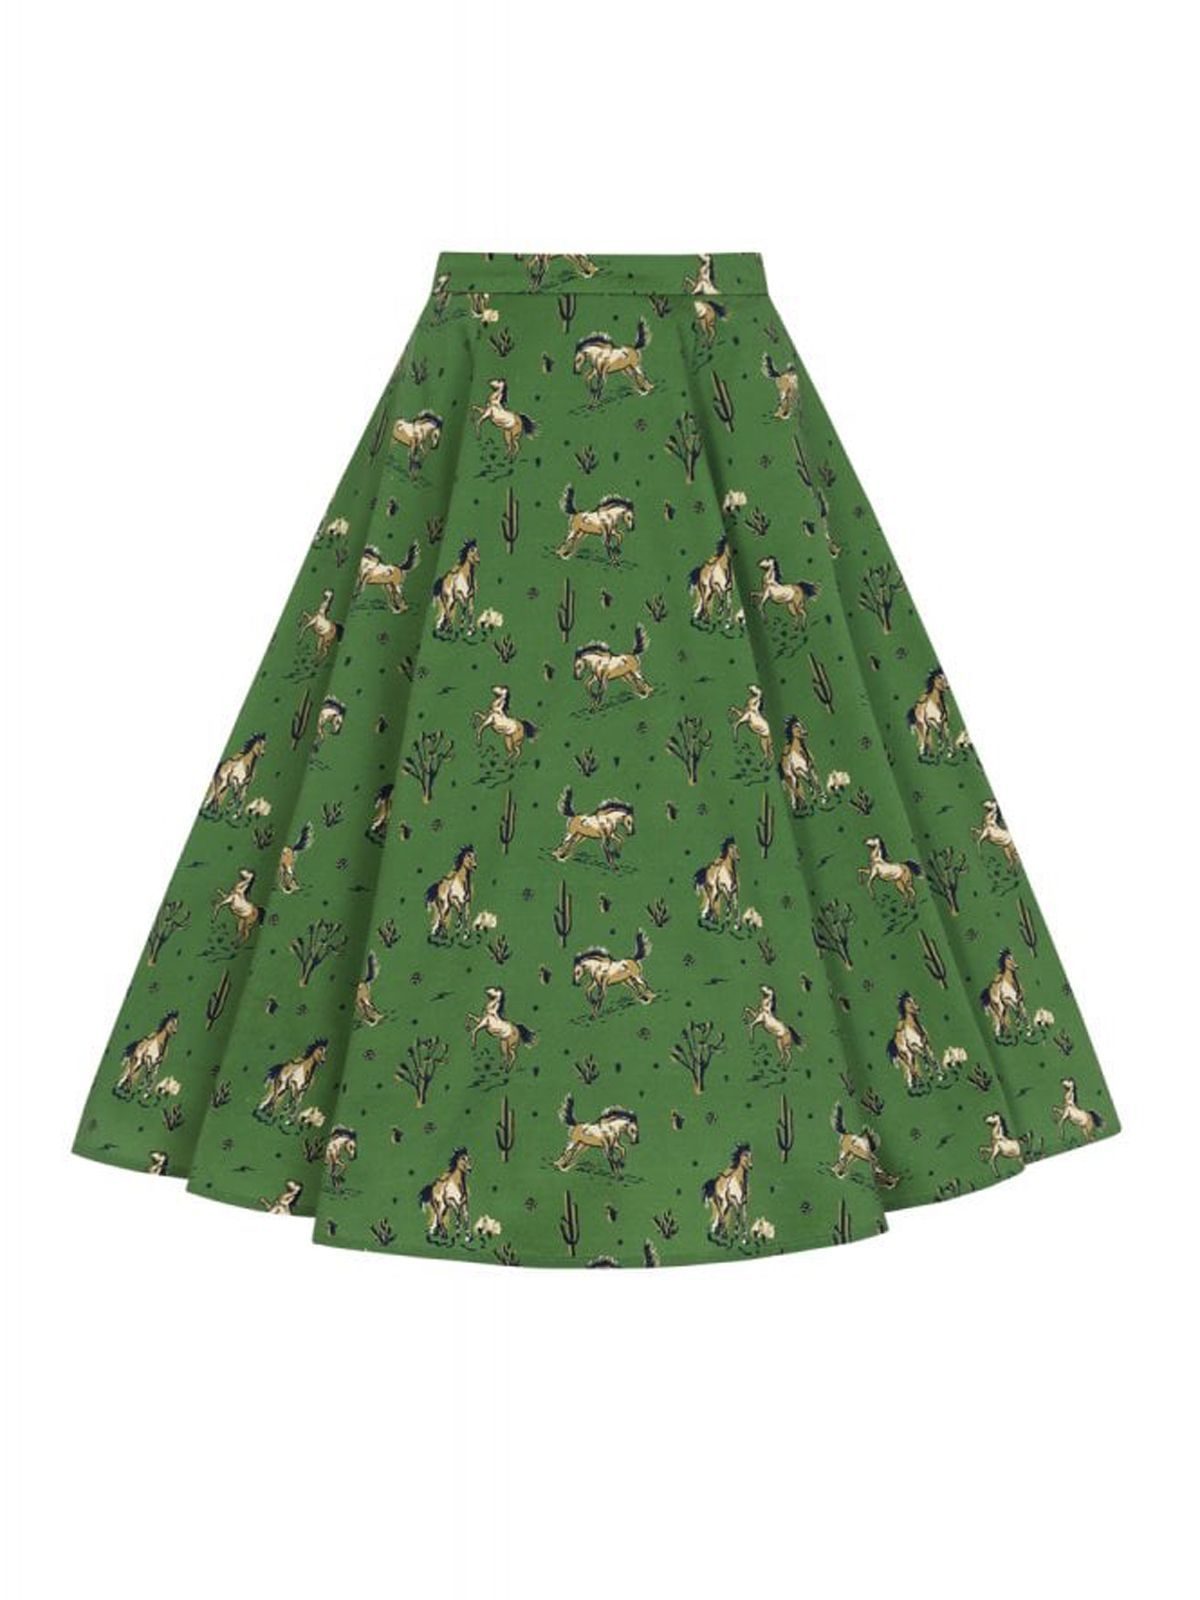 2PCS Green 1950s Horse Blouse Top & Skirt